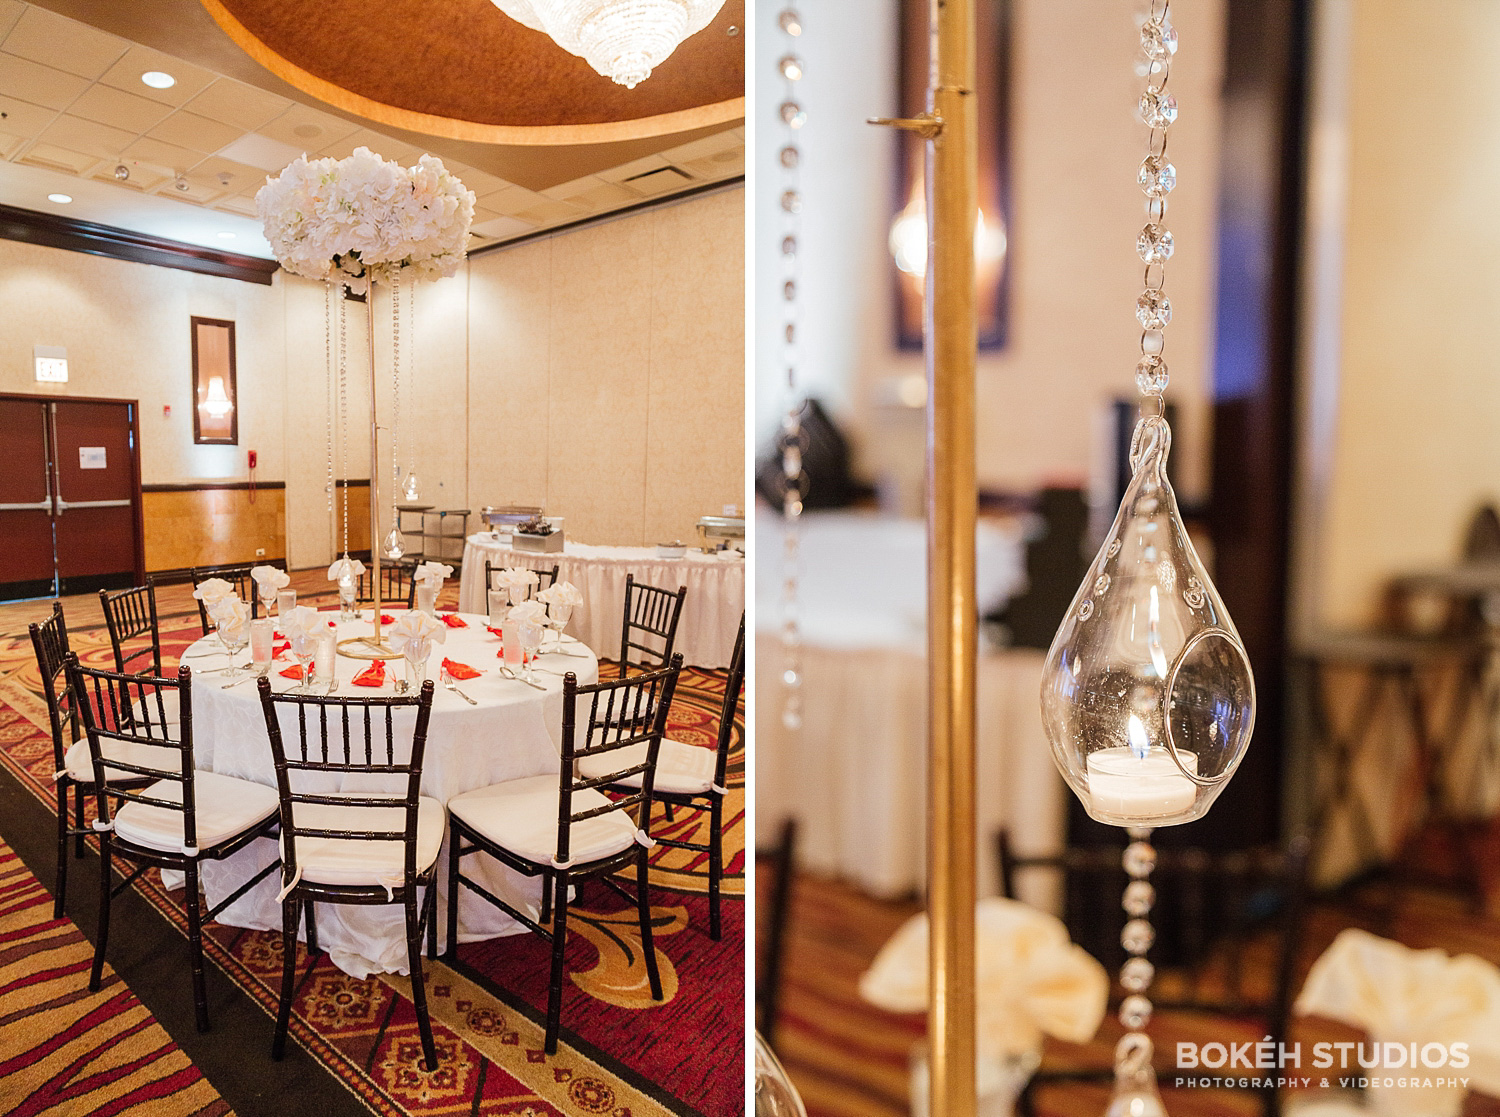 Bokeh-Studios_Muslim-Wedding_Holiday-Inn-Skokie-Chicago-Wedding_40